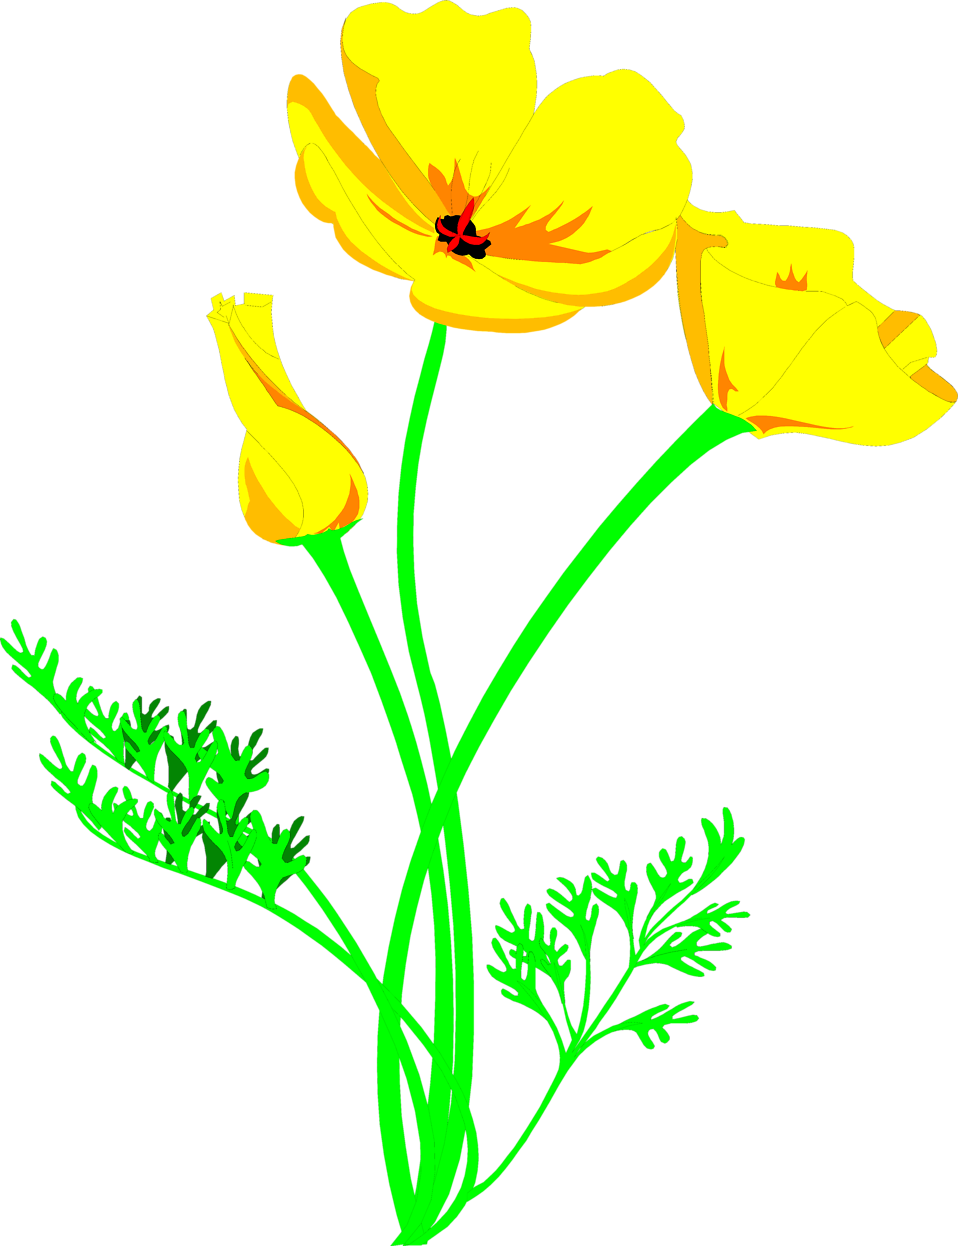 Poppies Free Stock Photo Illustration Of A Golden Poppy Flower